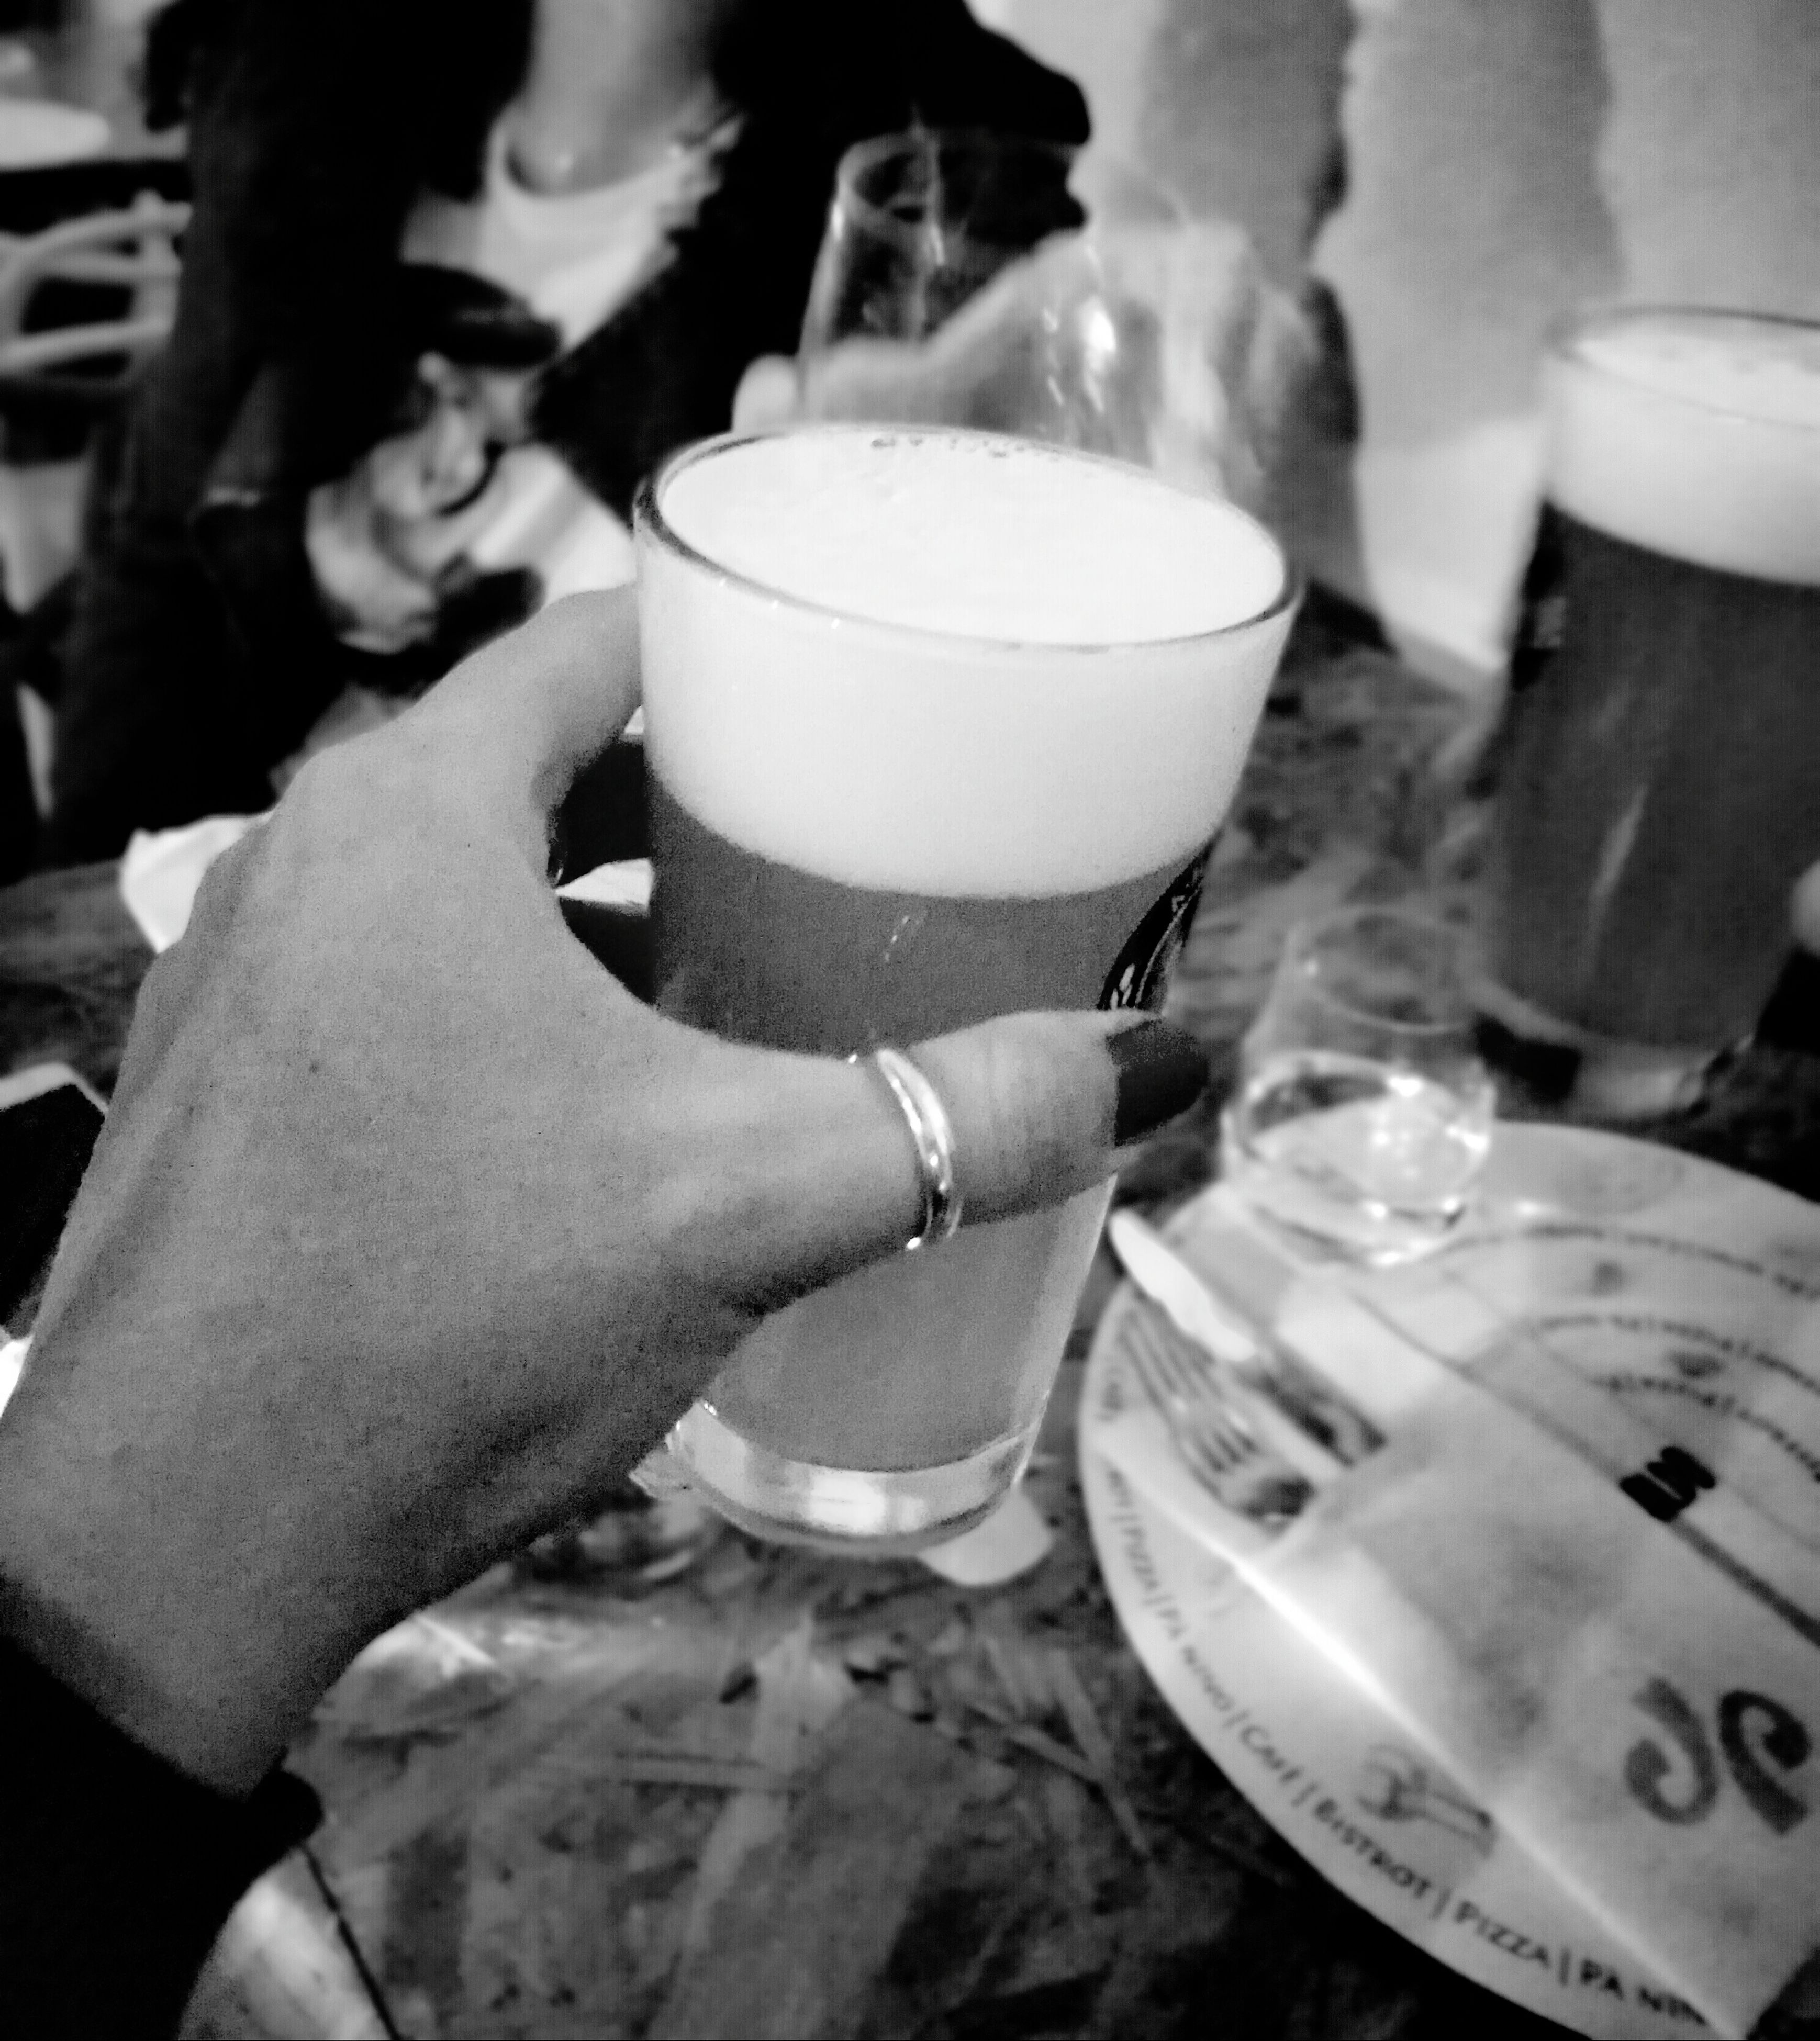 human hand, drink, real people, food and drink, indoors, human body part, drinking glass, refreshment, beer glass, one person, frothy drink, holding, table, beer, men, close-up, alcohol, wristwatch, freshness, day, people